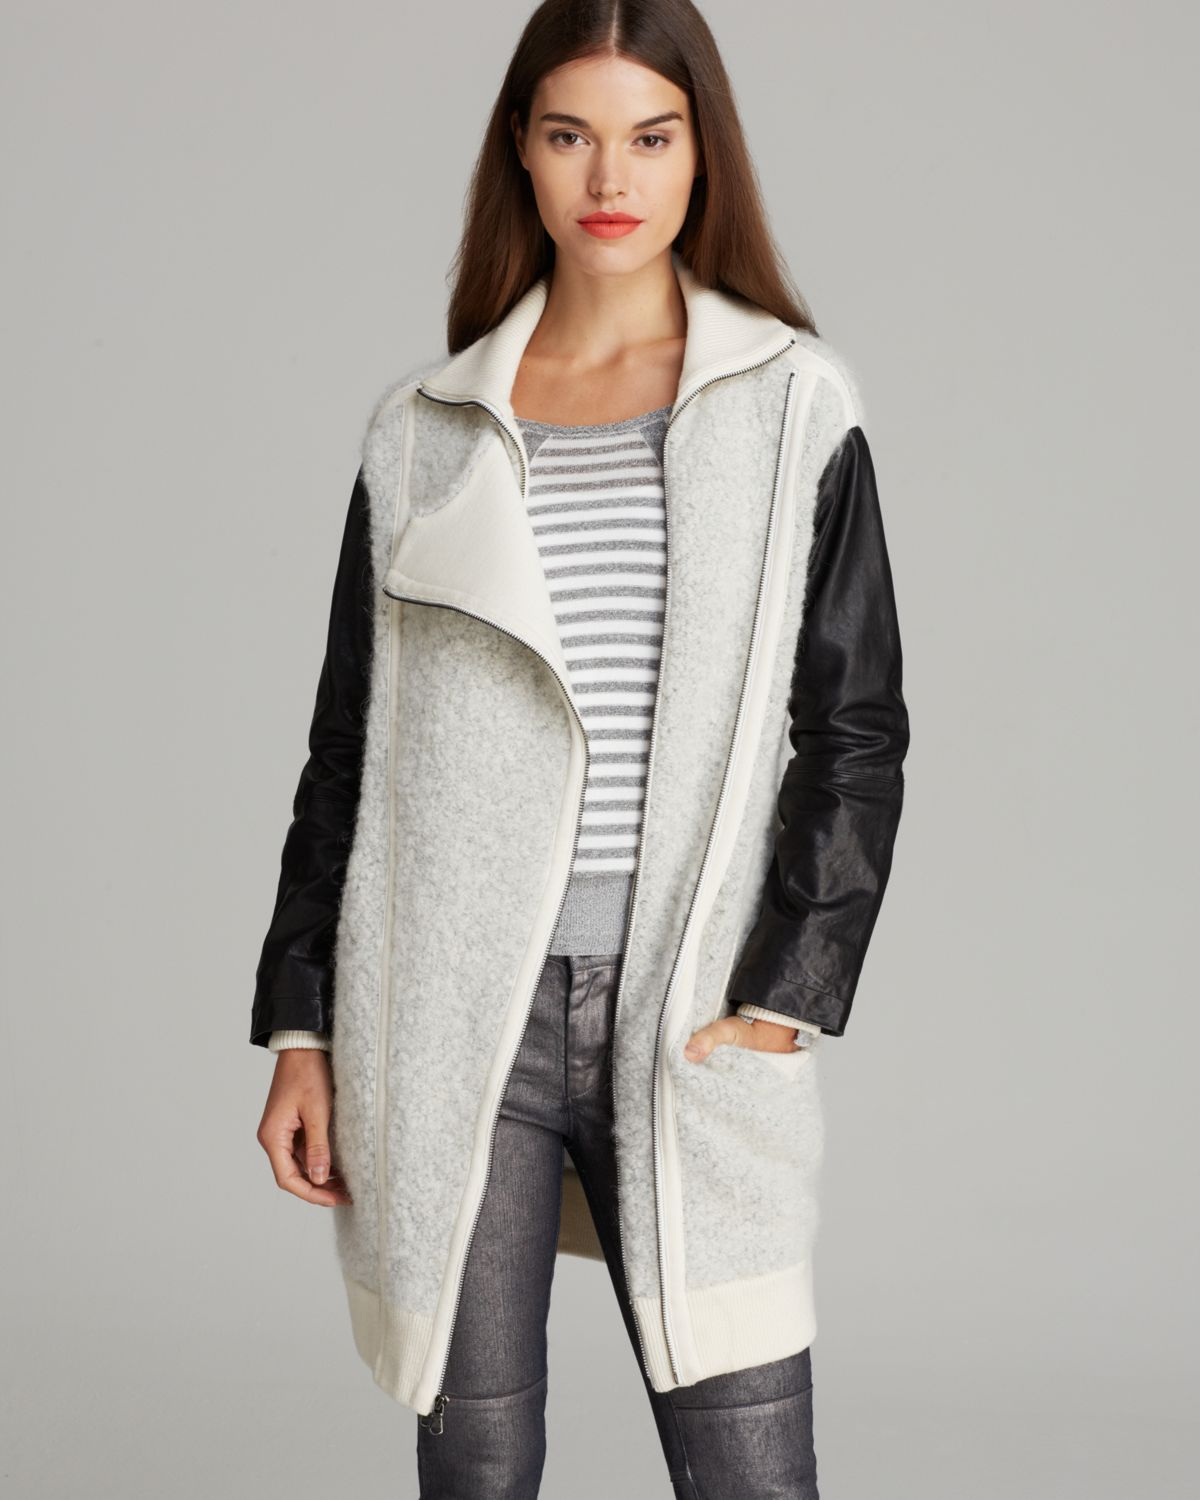 MARC BY MARC JACOBS Sweater Coat - Nessi Leather Sleeve   Bloomingdale's